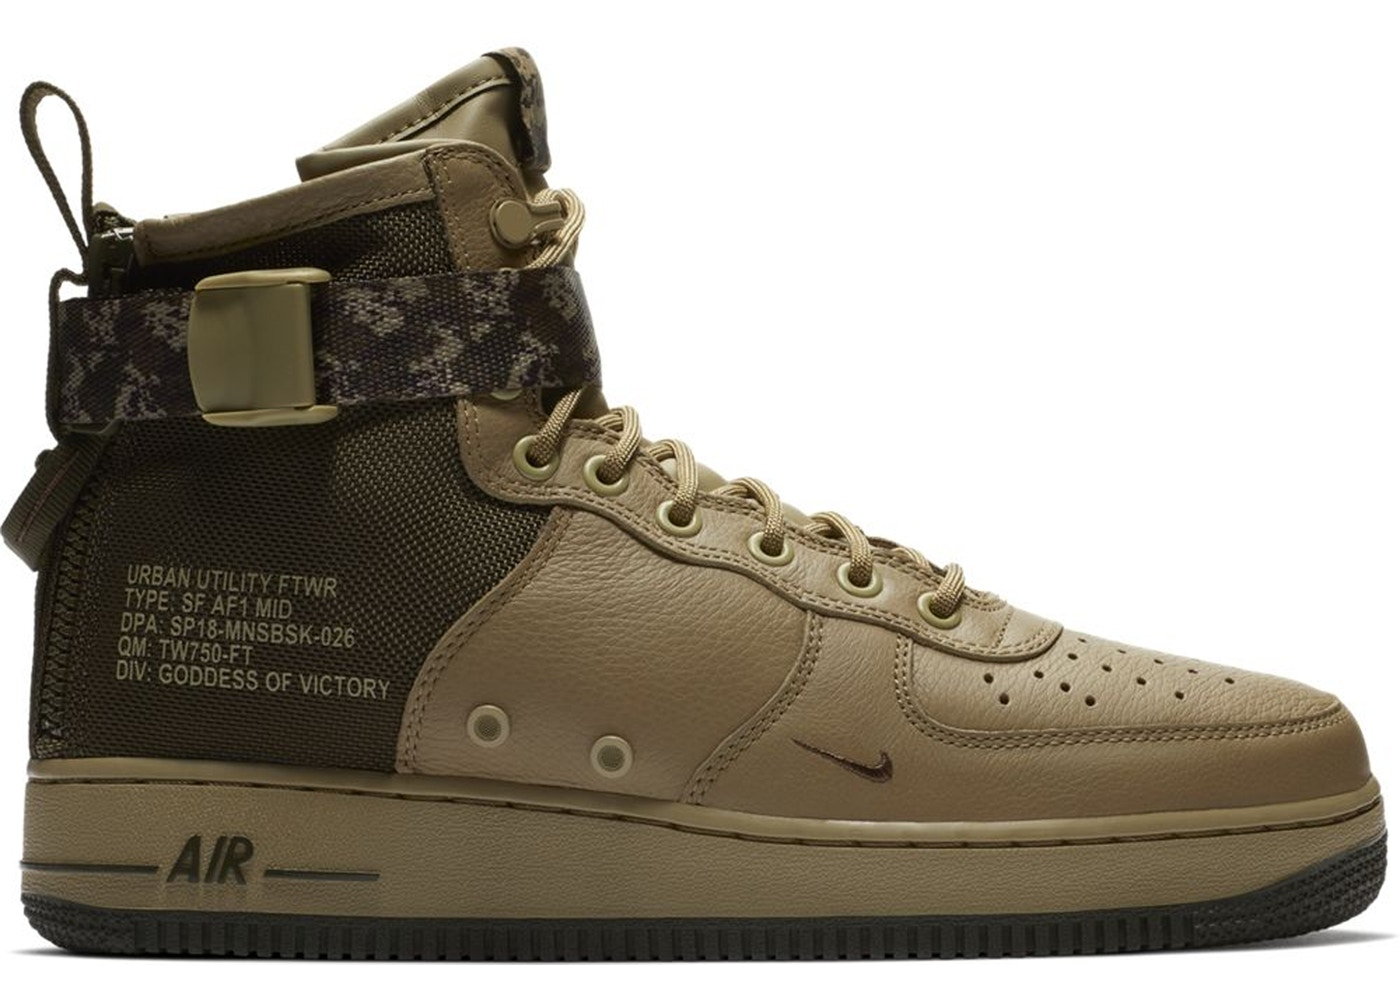 Nike WMNS SF AIR FORCE 1 MID Dark StuccoDark Stucco Gum